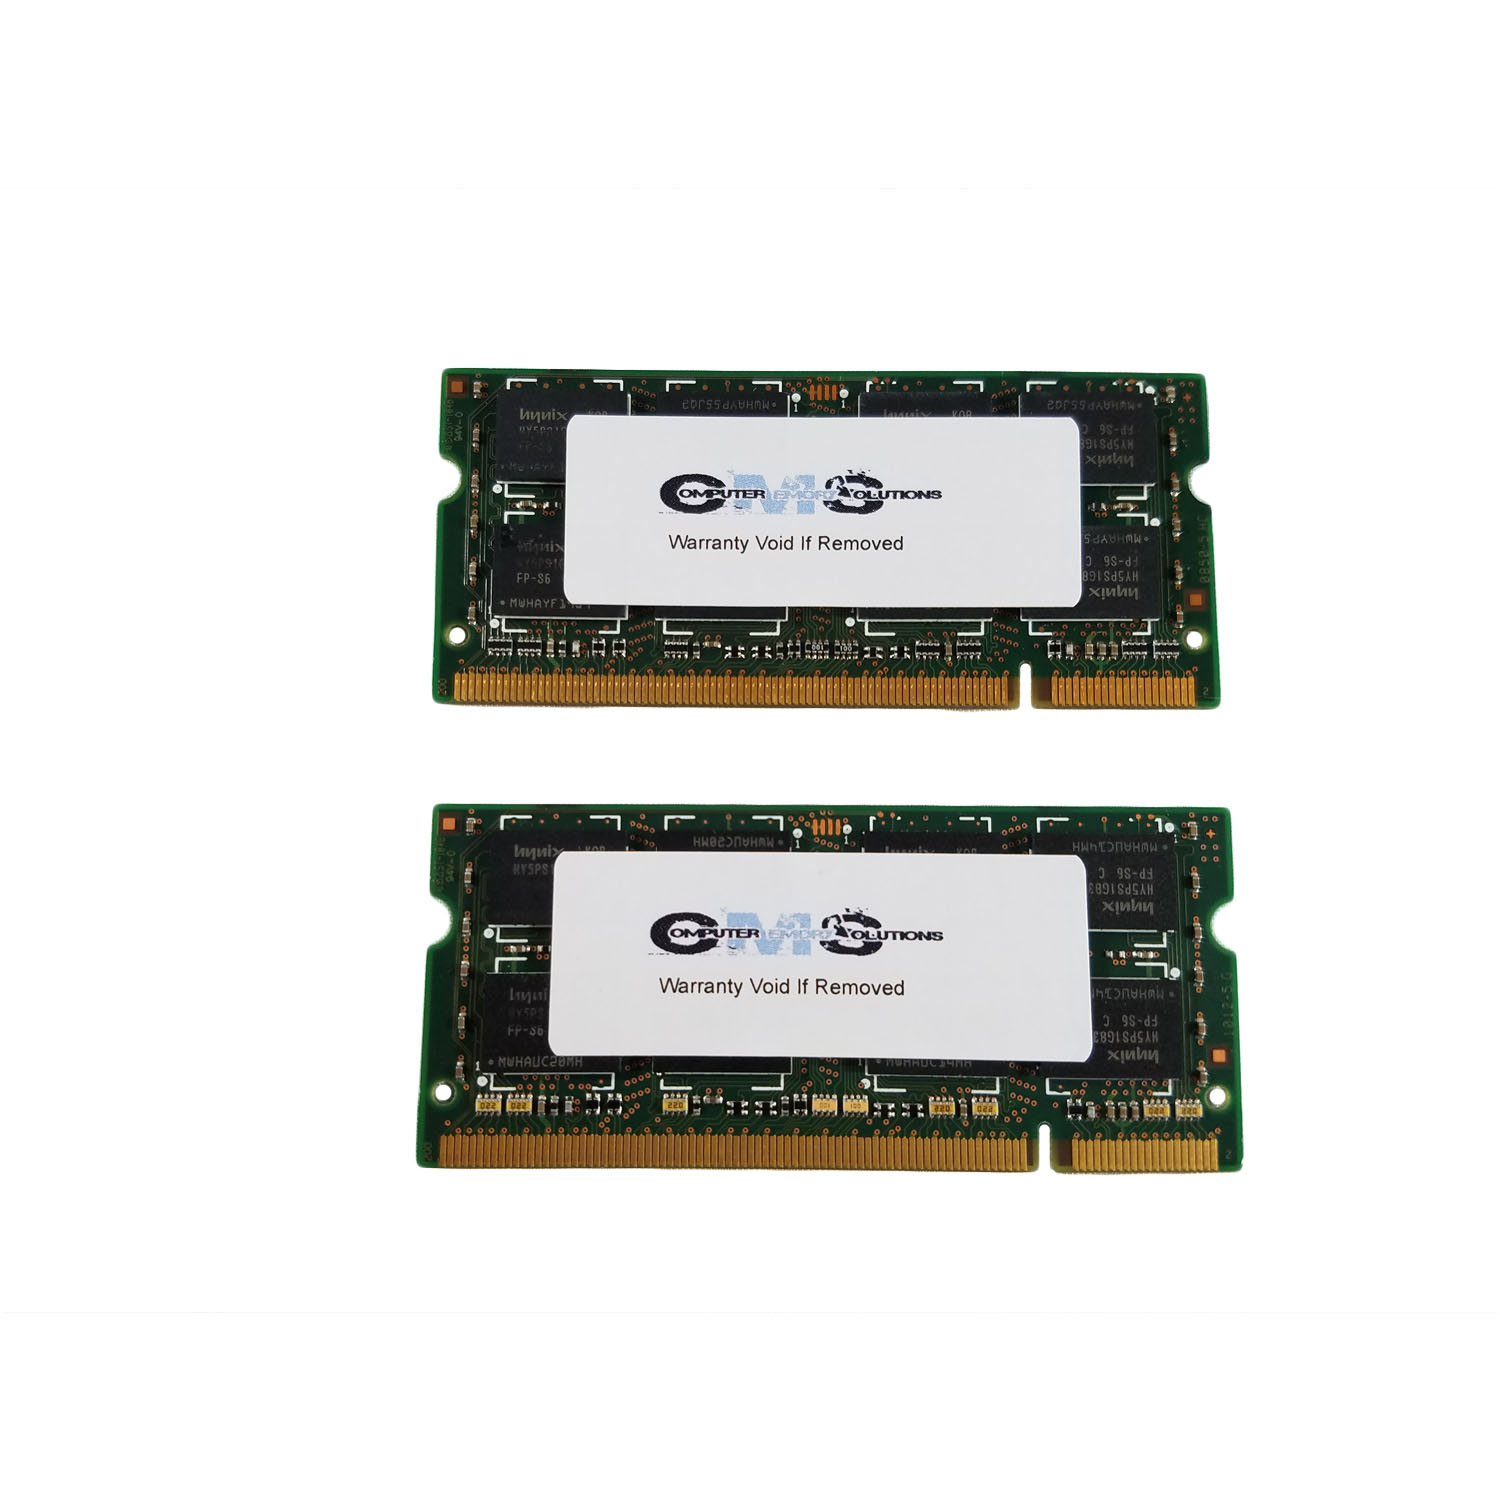 2Gb (2X1Gb) Sodimm Ram Memory Compatible With Dell Latitude D600 Notebook Series By CMS A49